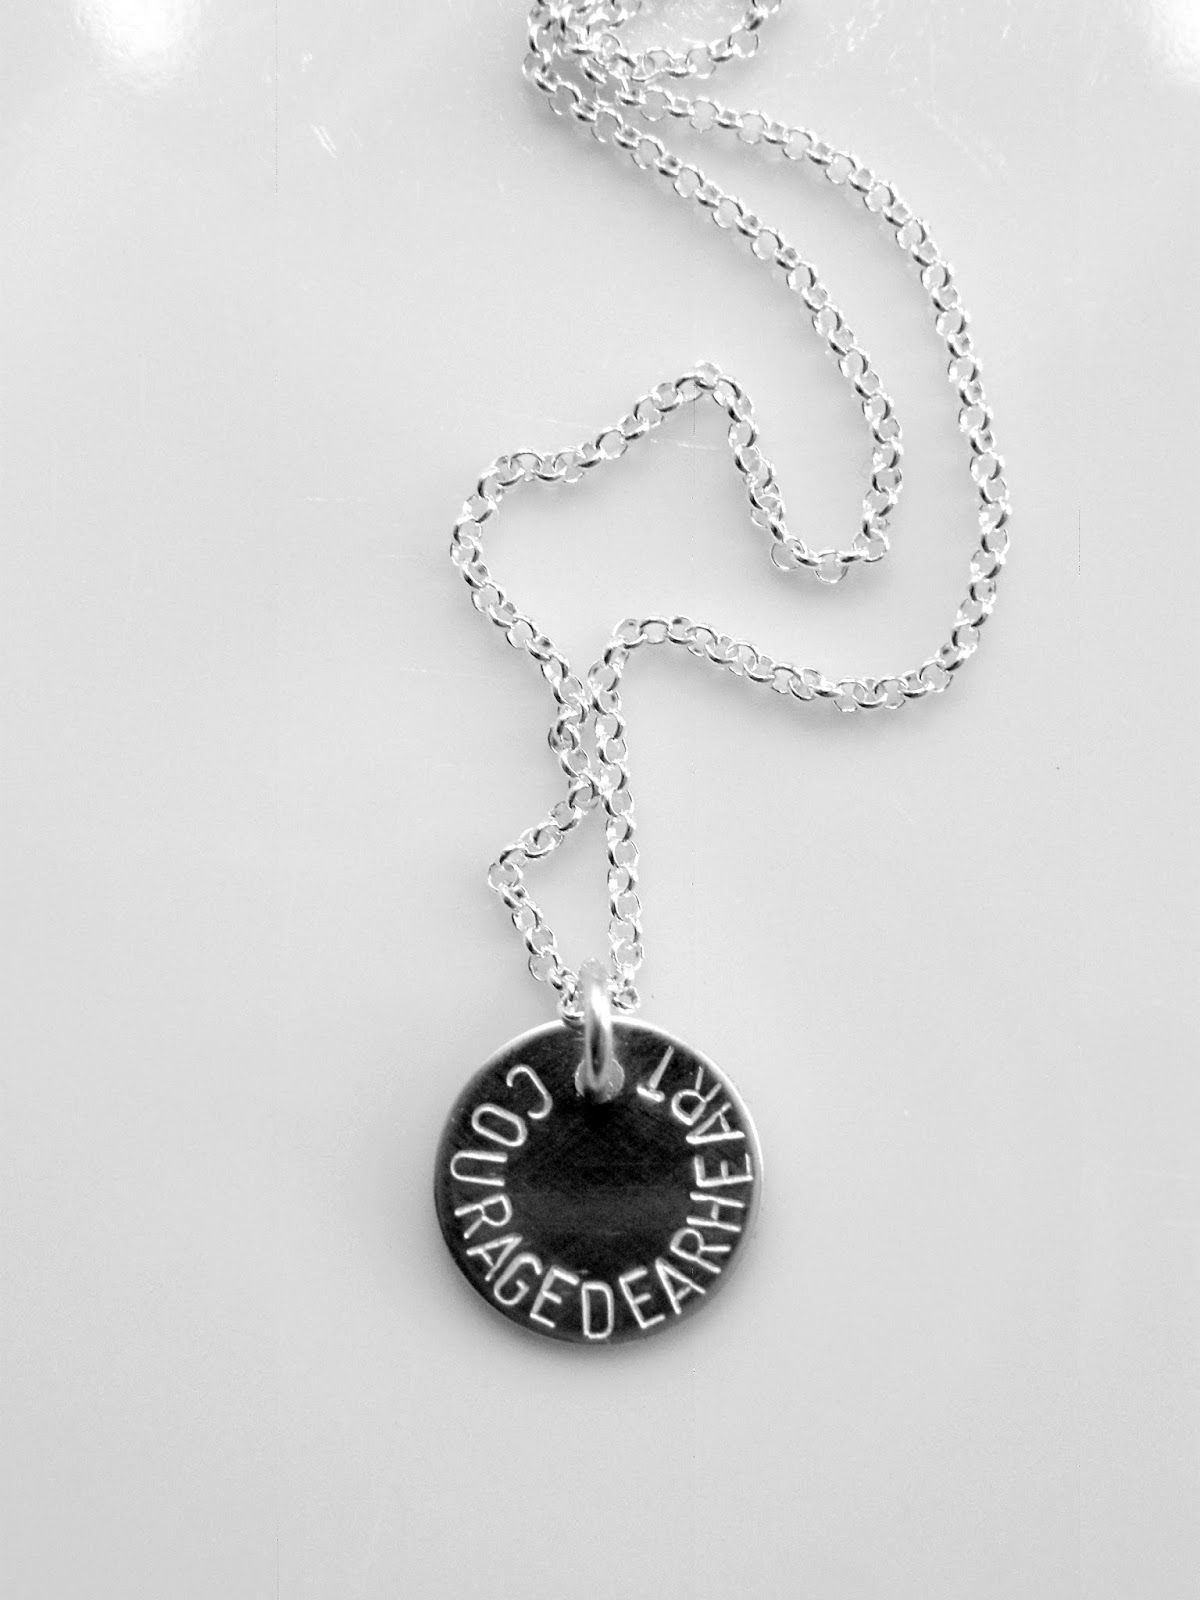 """Courage, dear heart."" -C.S. Lewis.  Silver necklace."